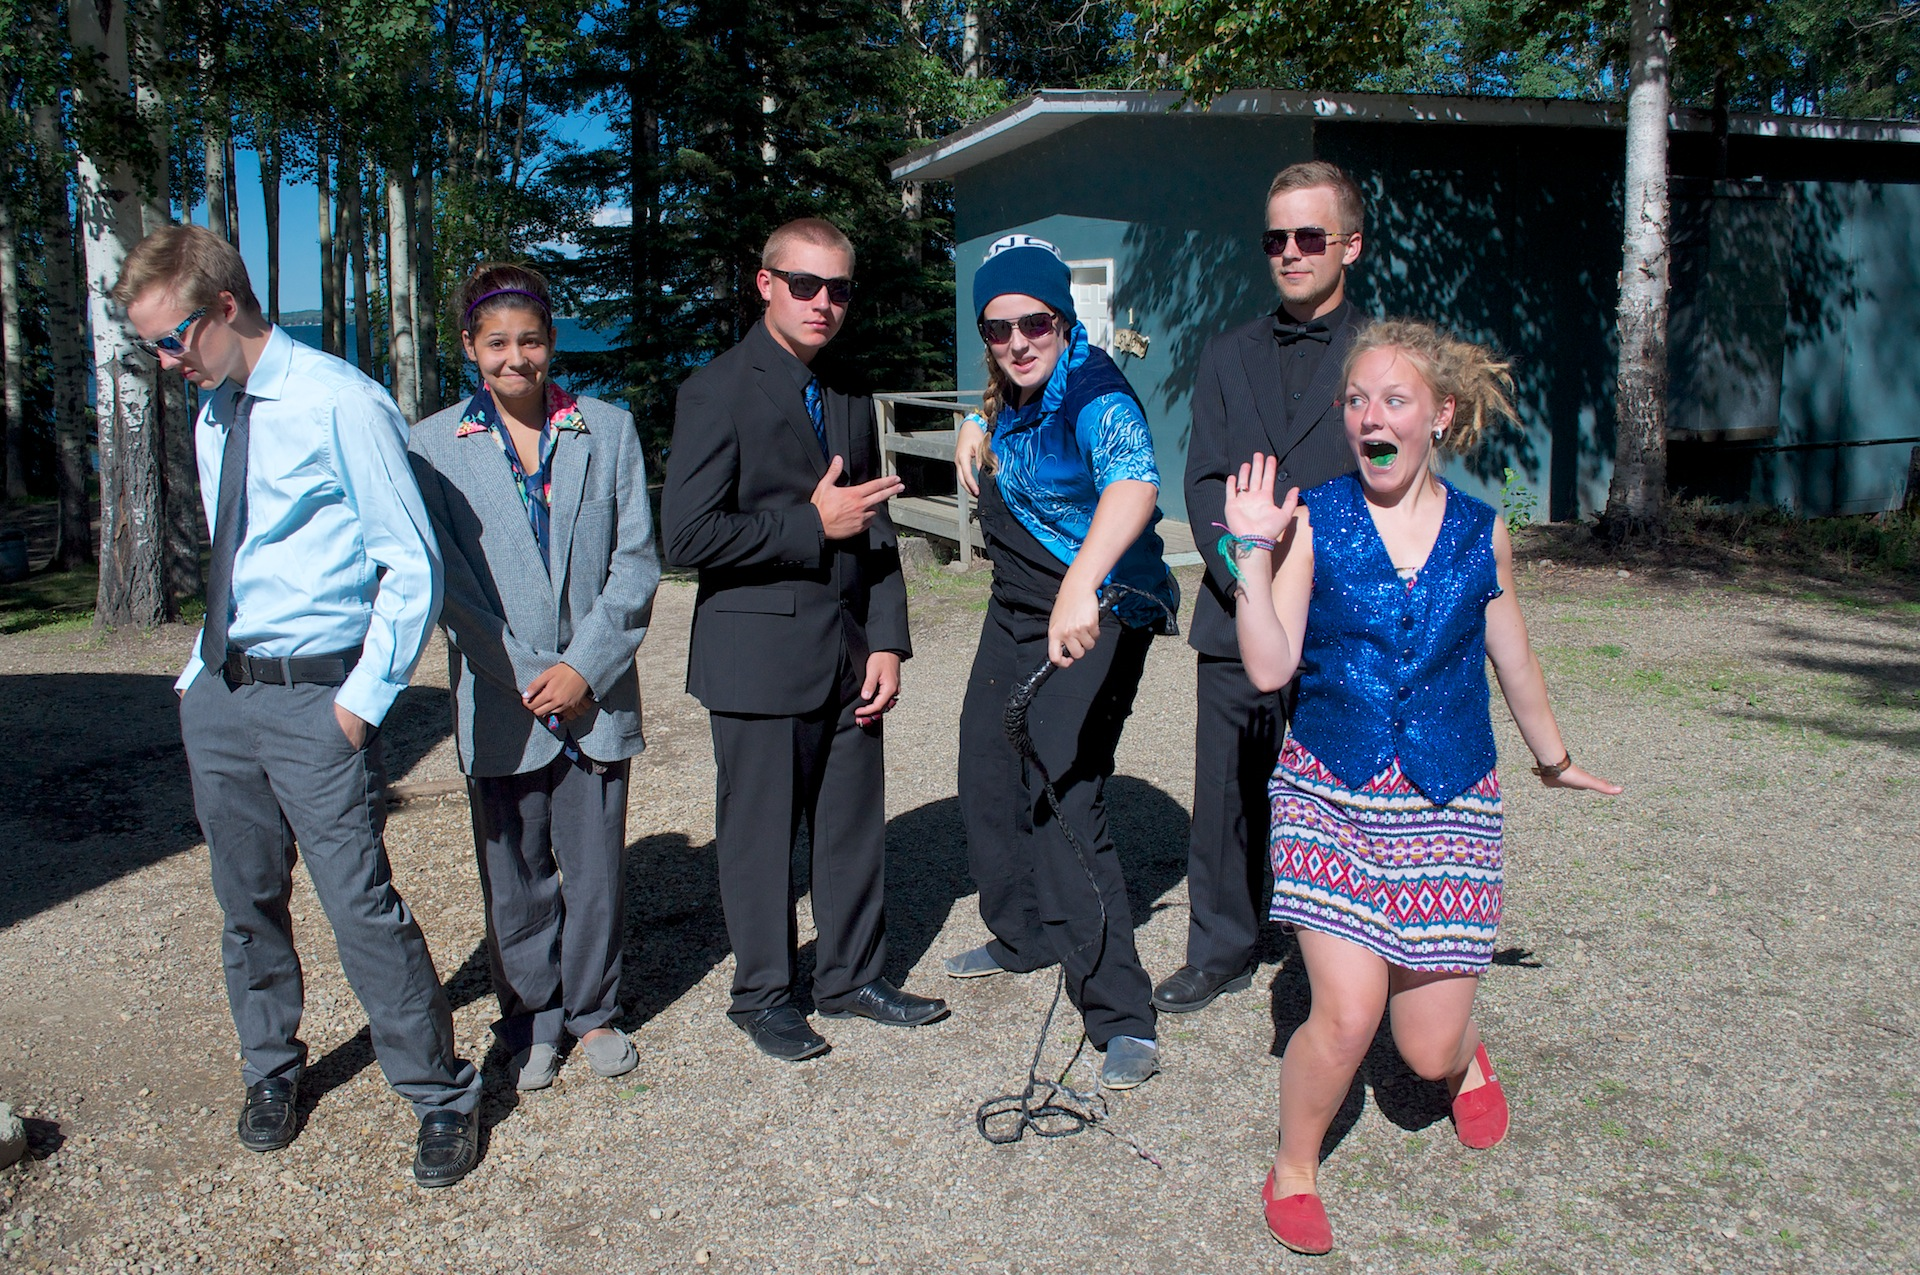 Sr. High Dress Up Night, Covenant Bay Bible Camp, Alberta.